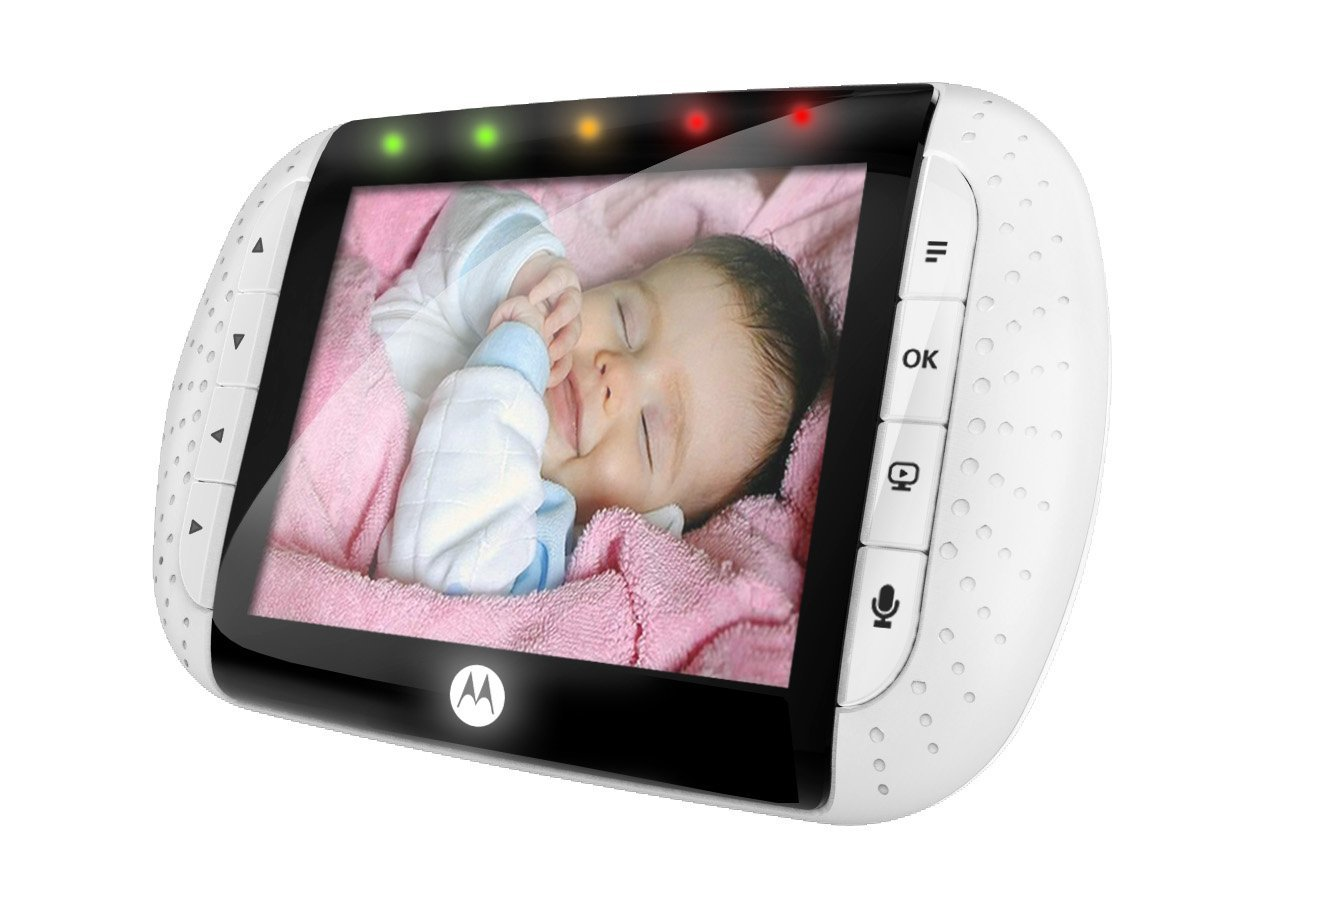 best video baby monitor 2013 14 great for kids. Black Bedroom Furniture Sets. Home Design Ideas